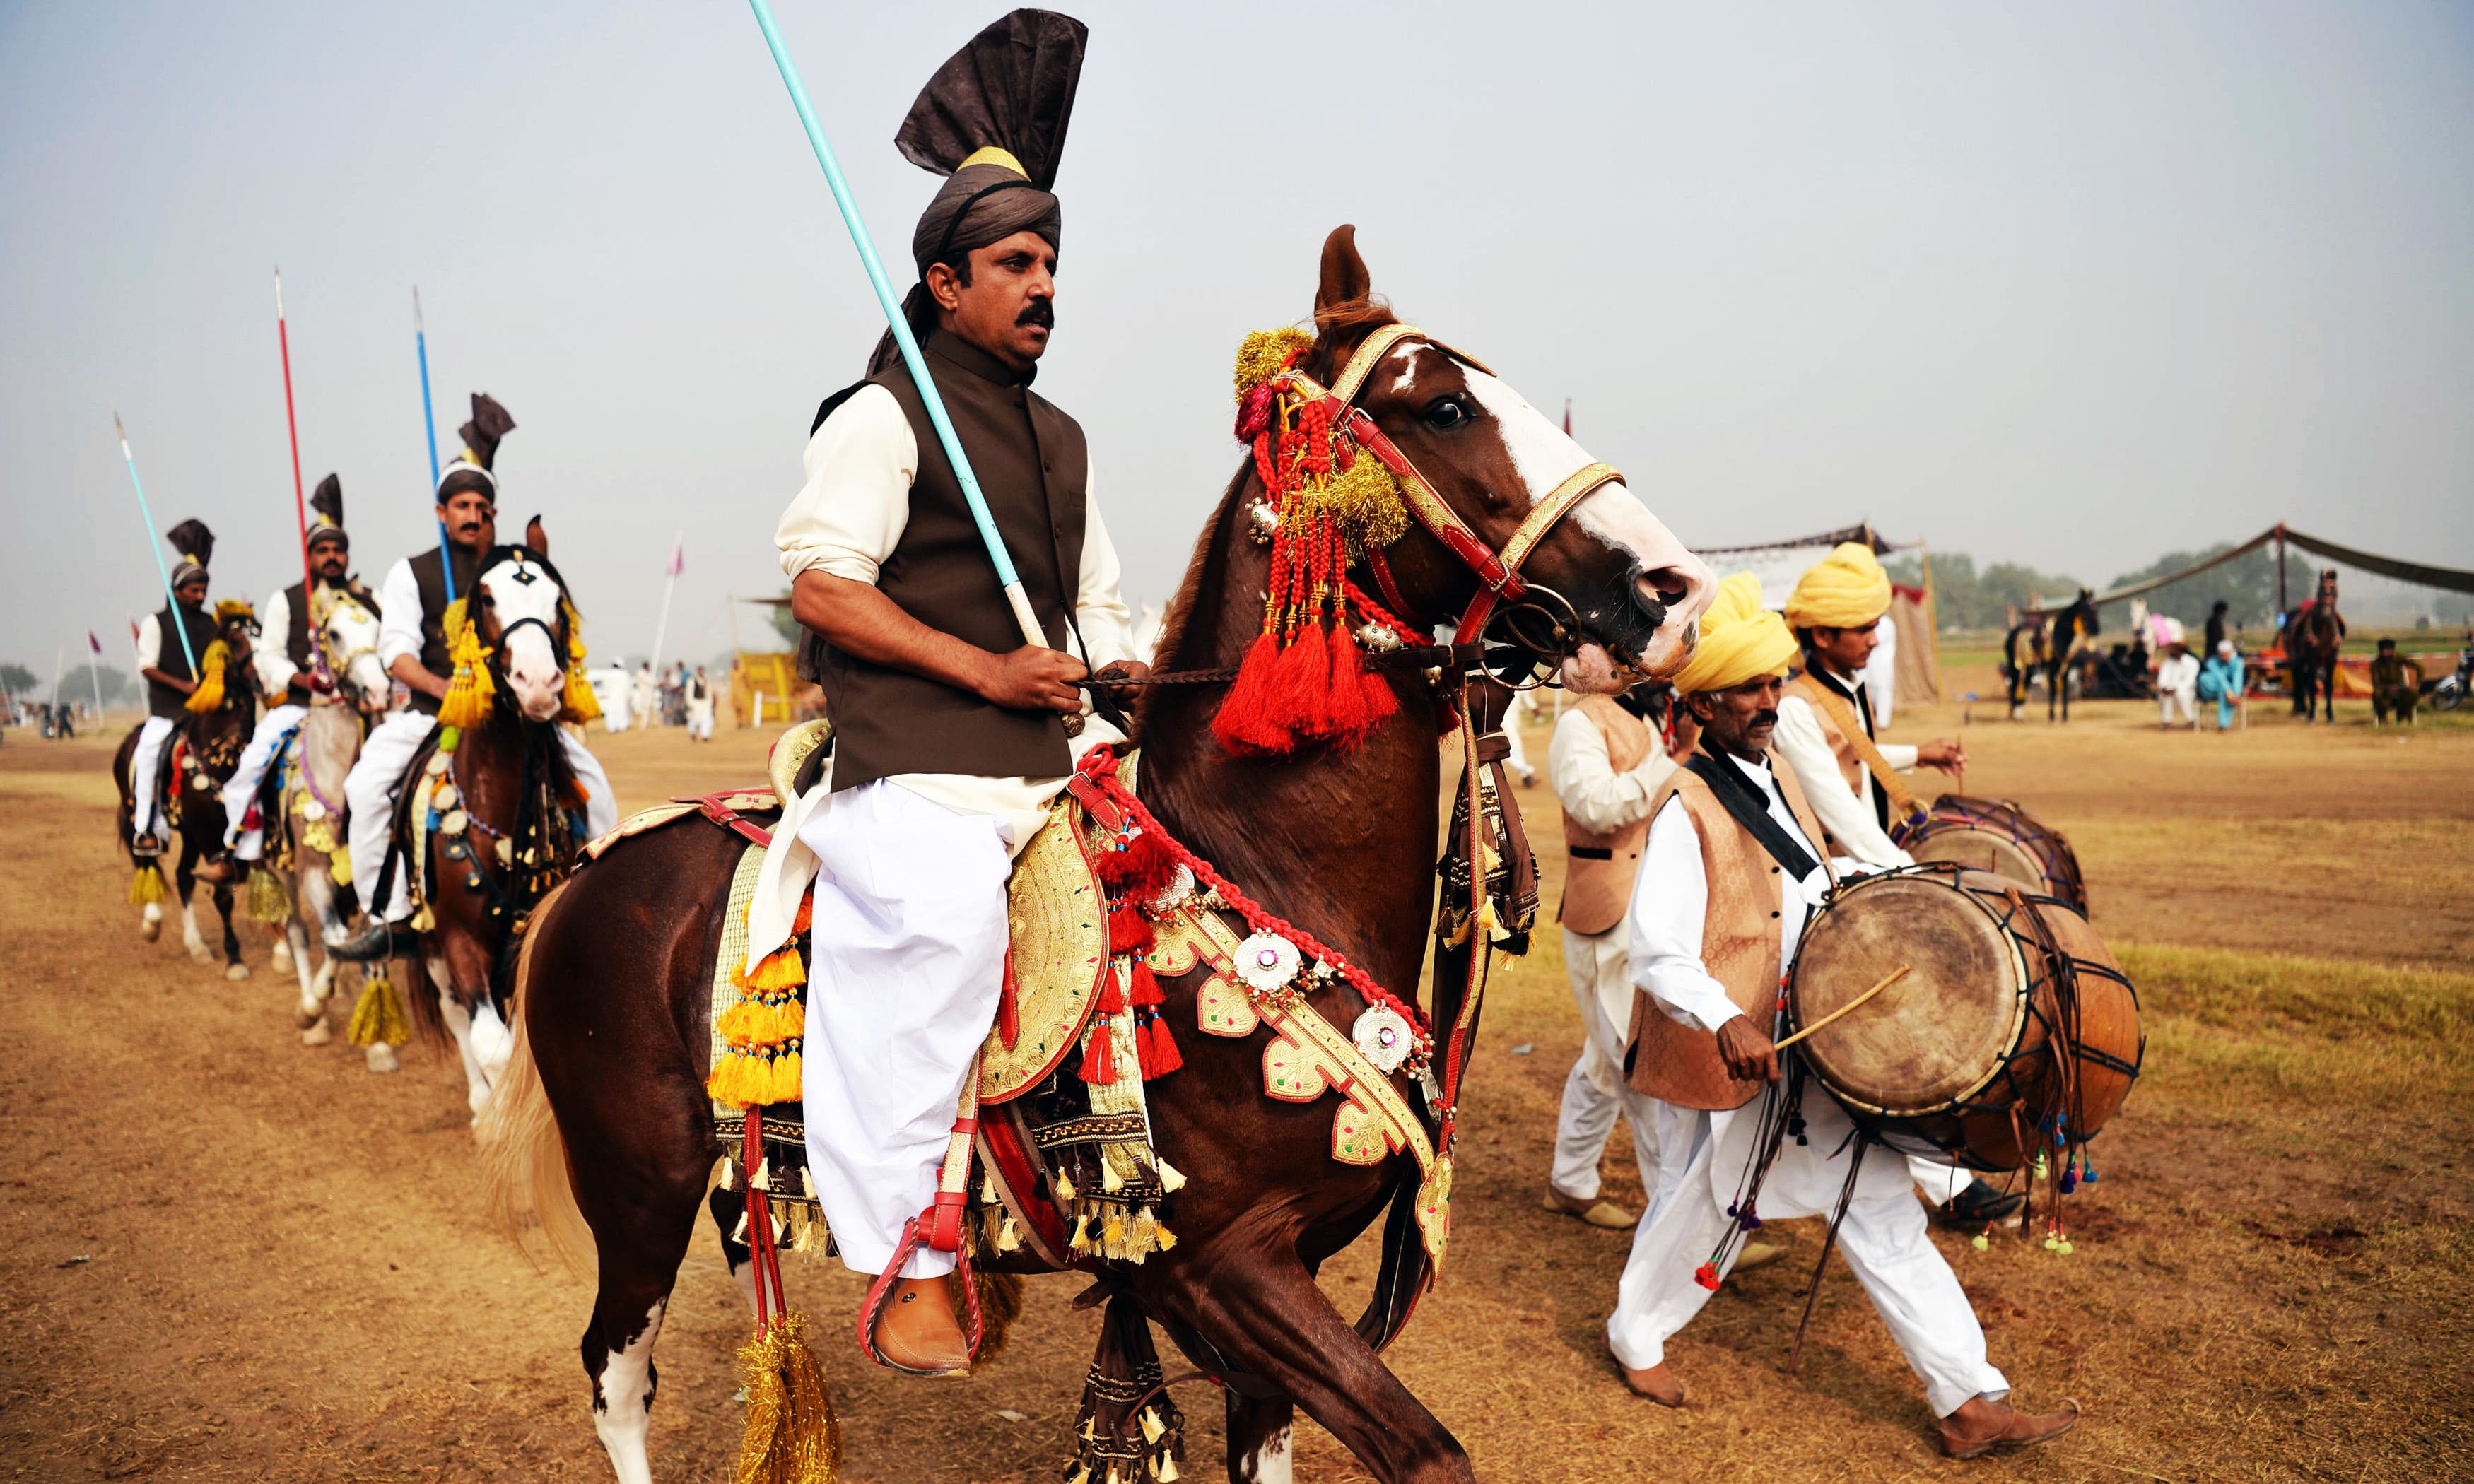 Riders hold lances used to pick up pegs at a tent-pegging competition in Attock district. —AFP